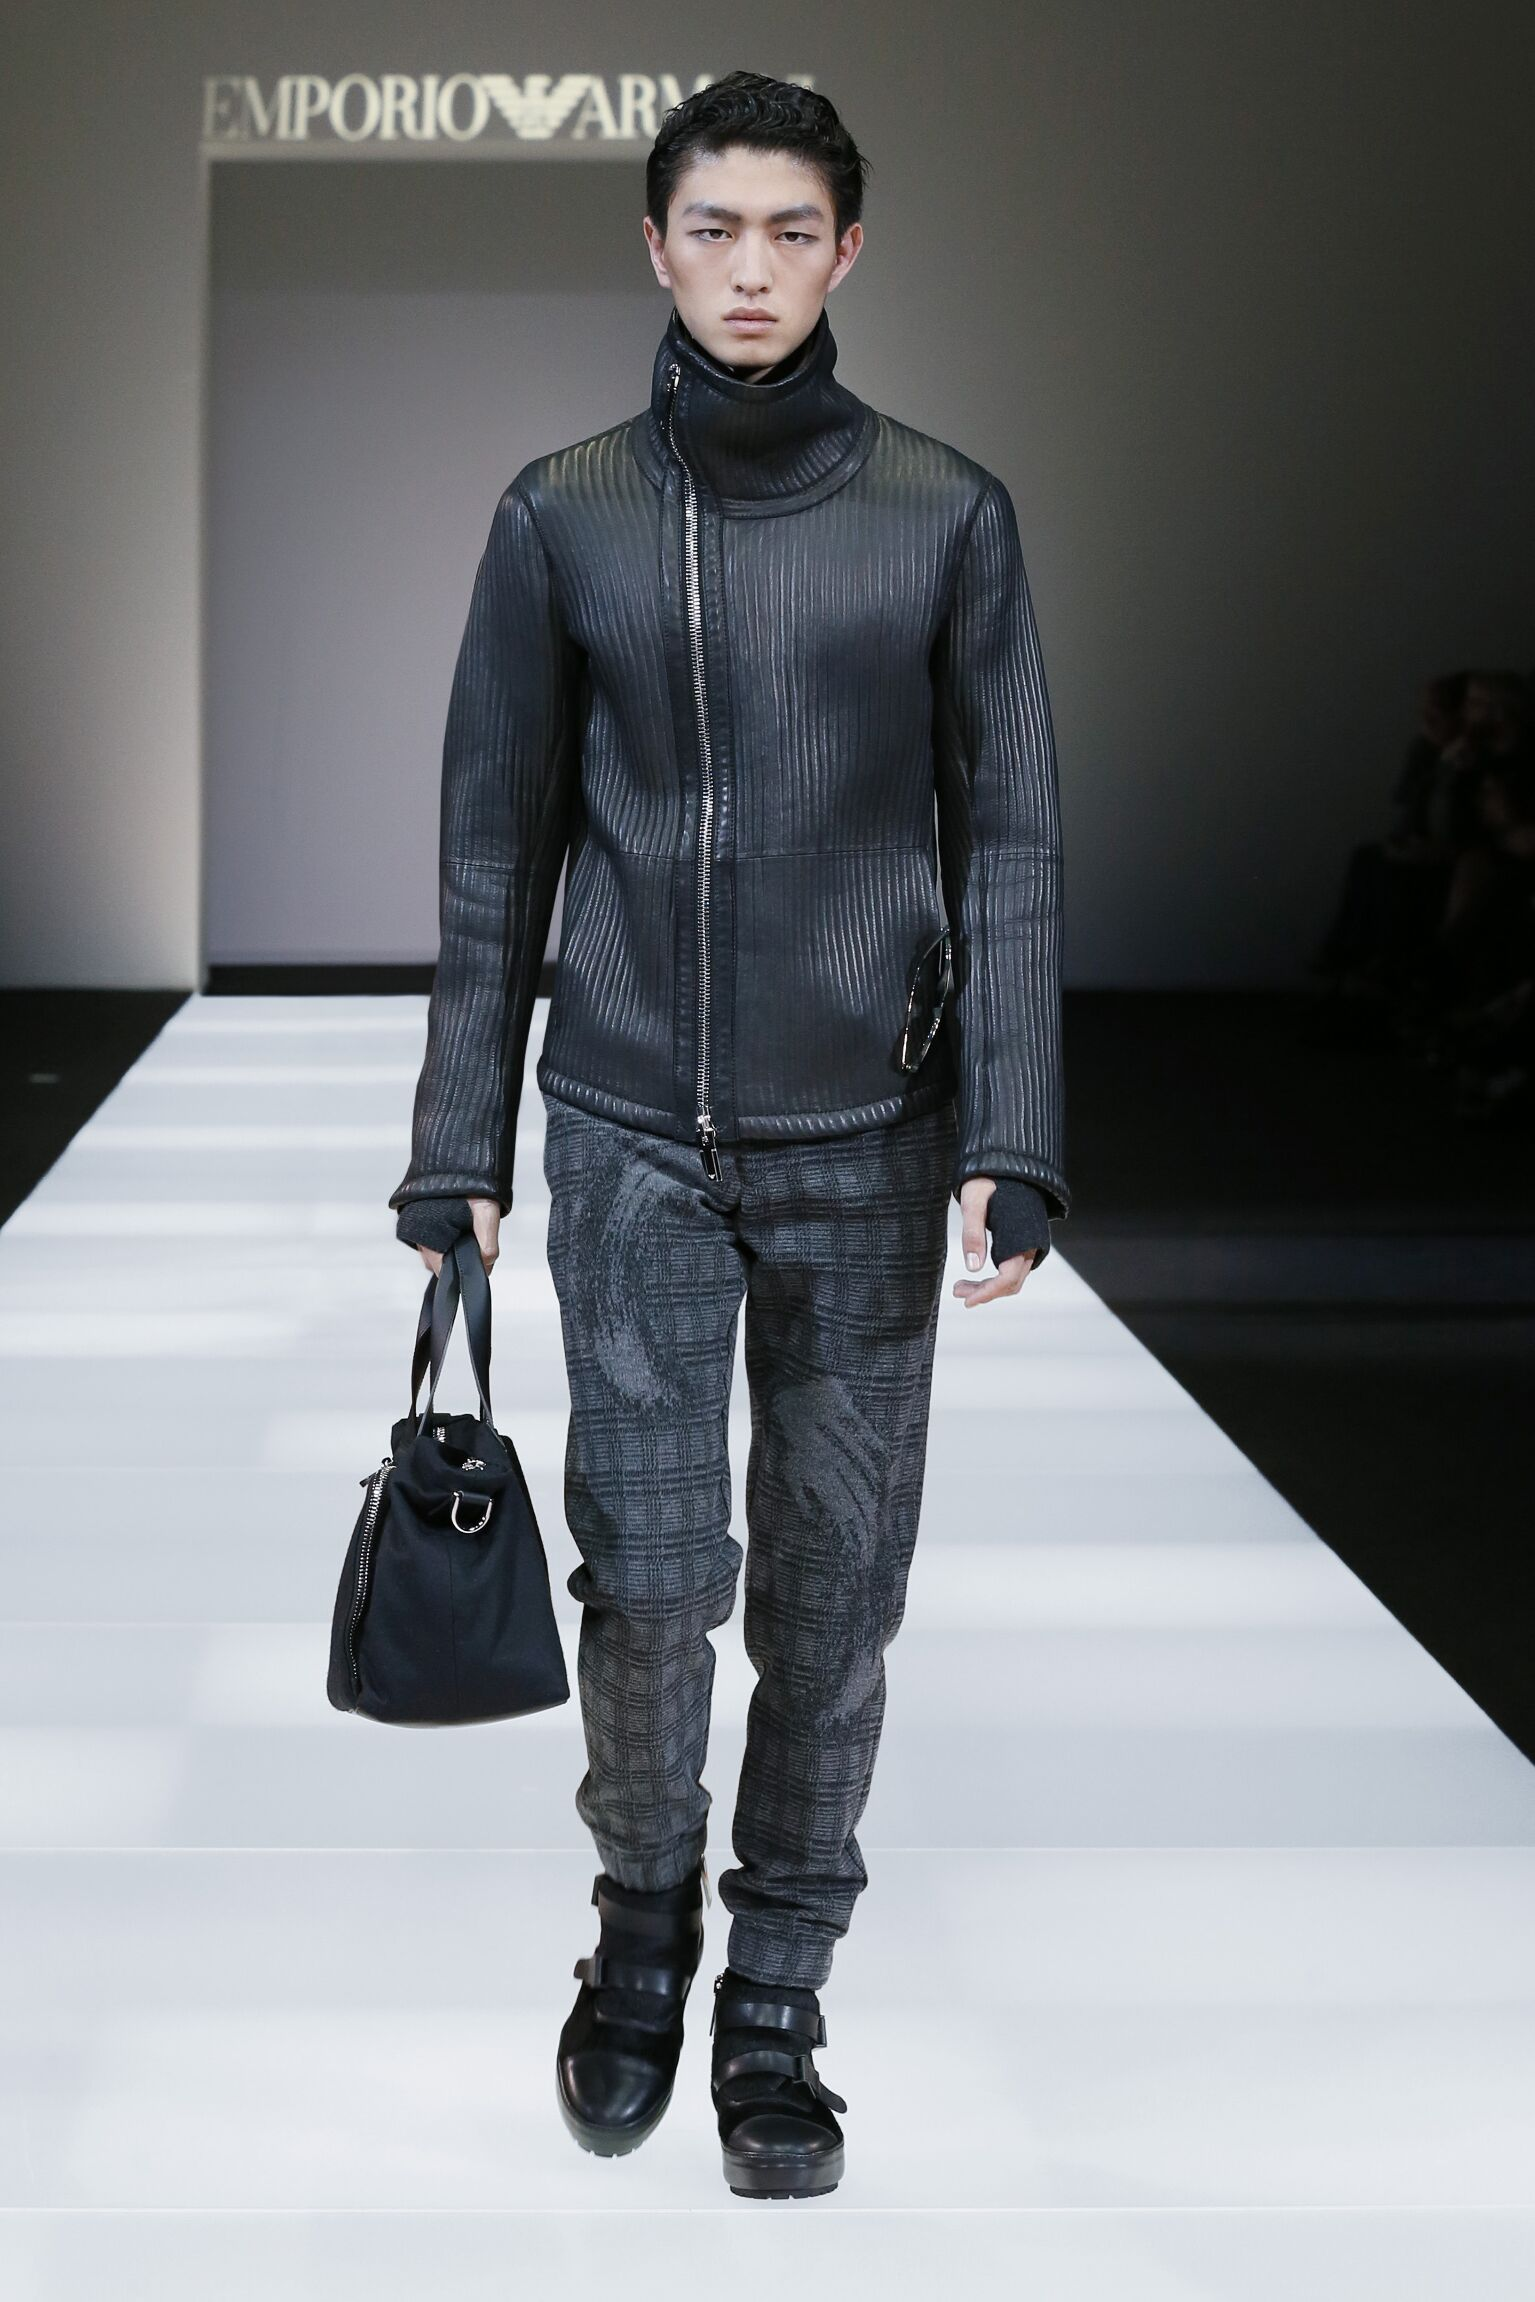 Emporio Armani Collection Fashion Show FW 2015 2016